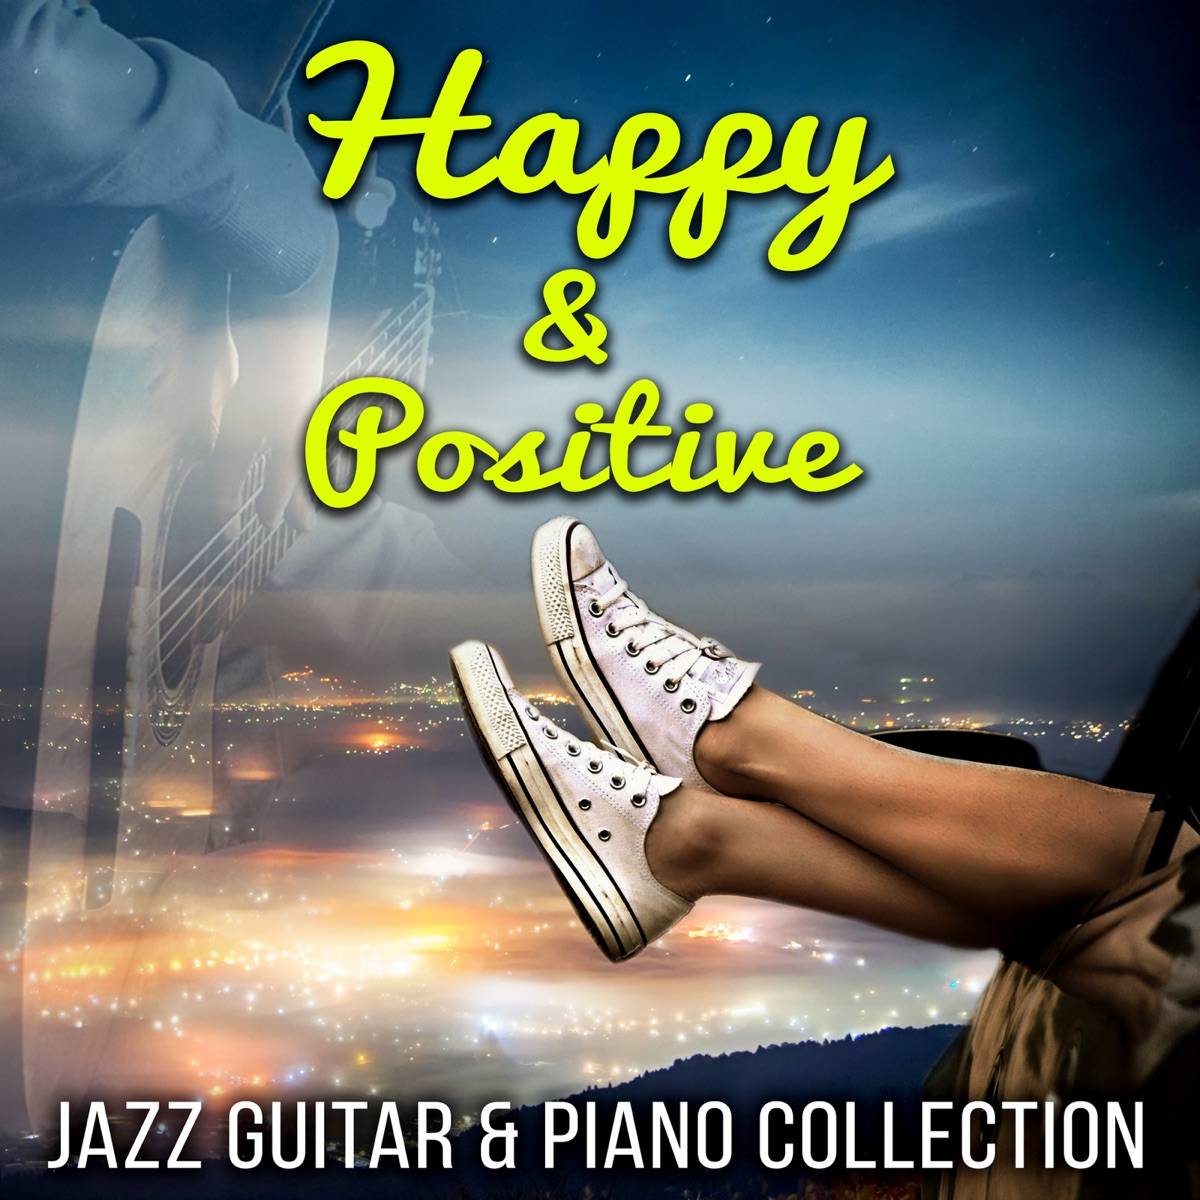 43456f688bb7b Happy & Positive - Guitar & Piano Jazz Collection, Just Relax ...